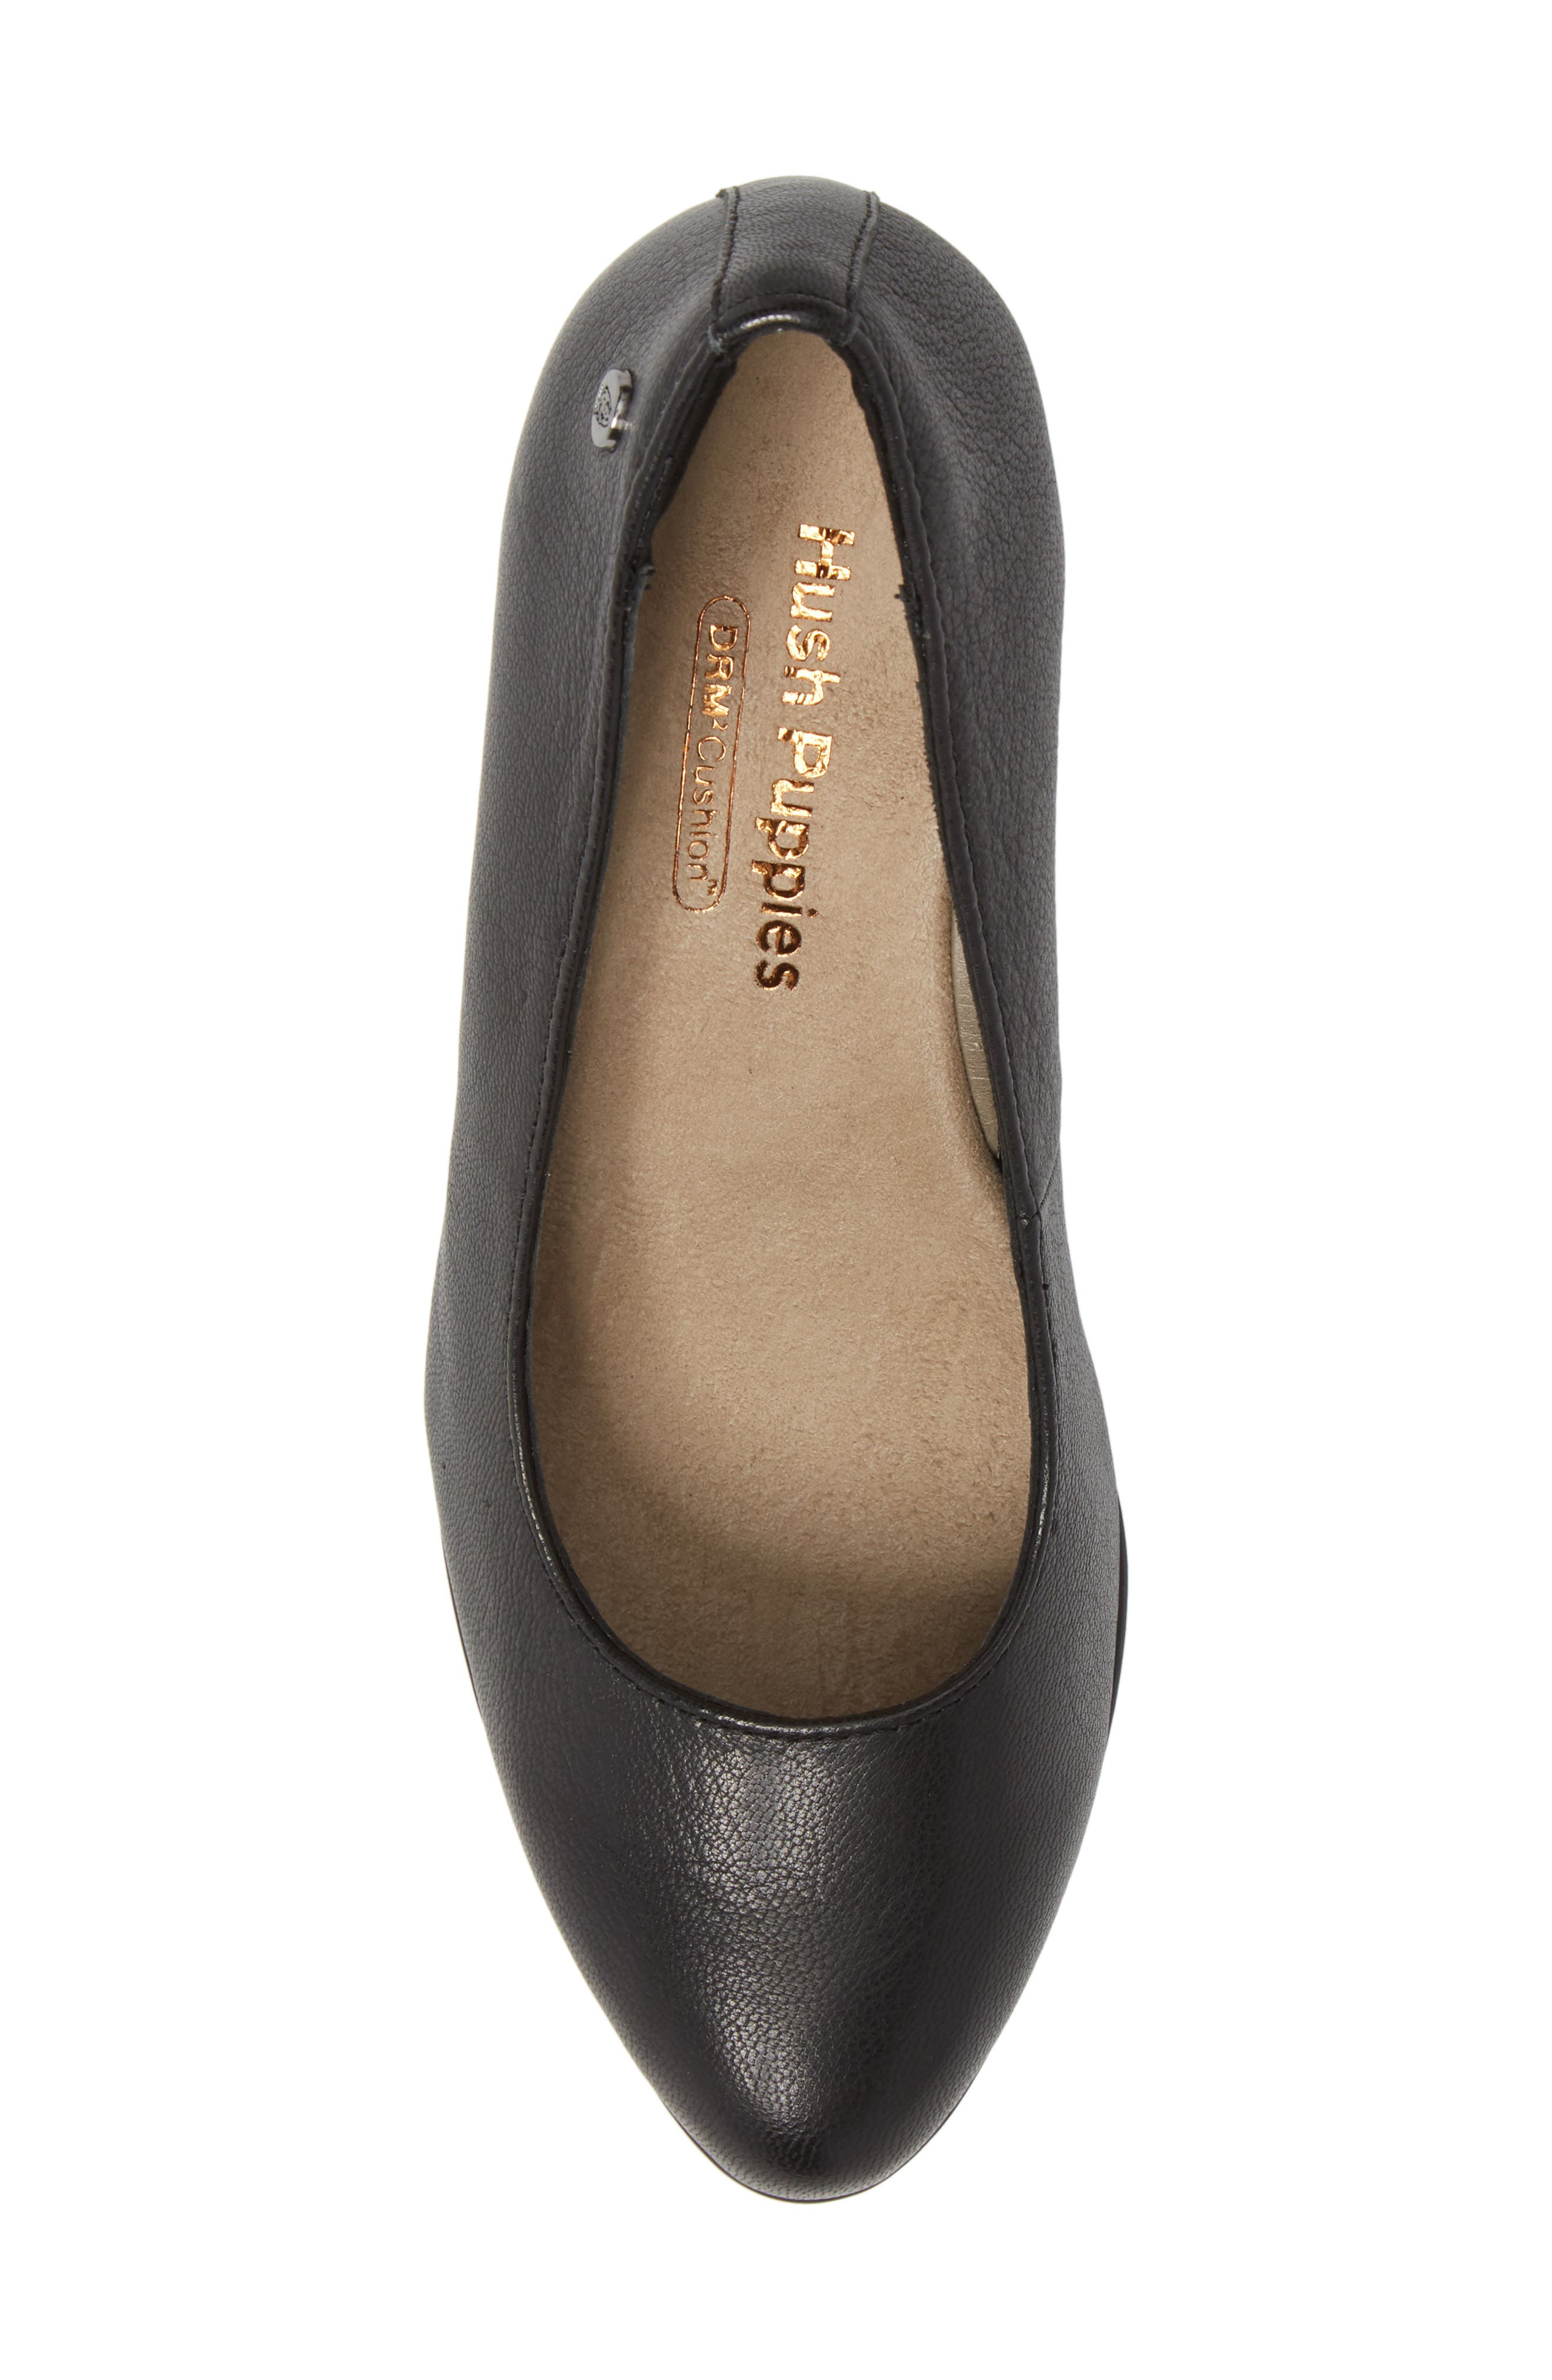 Minam Meaghan Pump,                             Alternate thumbnail 5, color,                             Black Leather